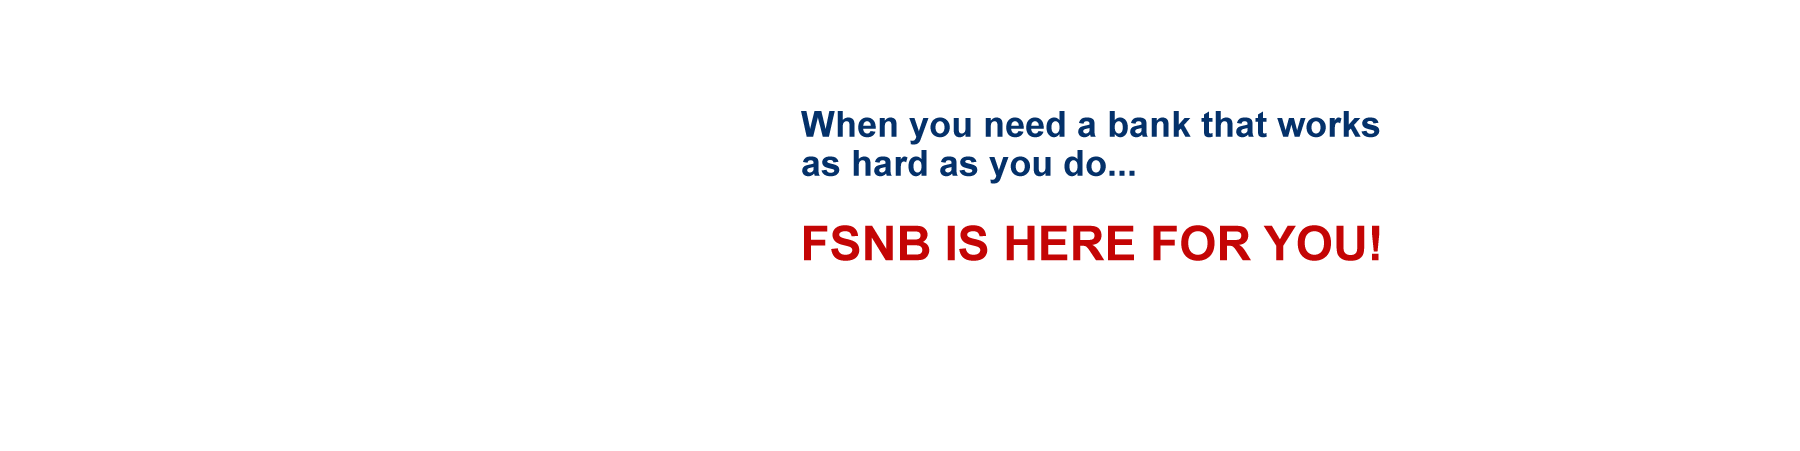 When you need a bank that works as hard as you do, FSNB is here for you!